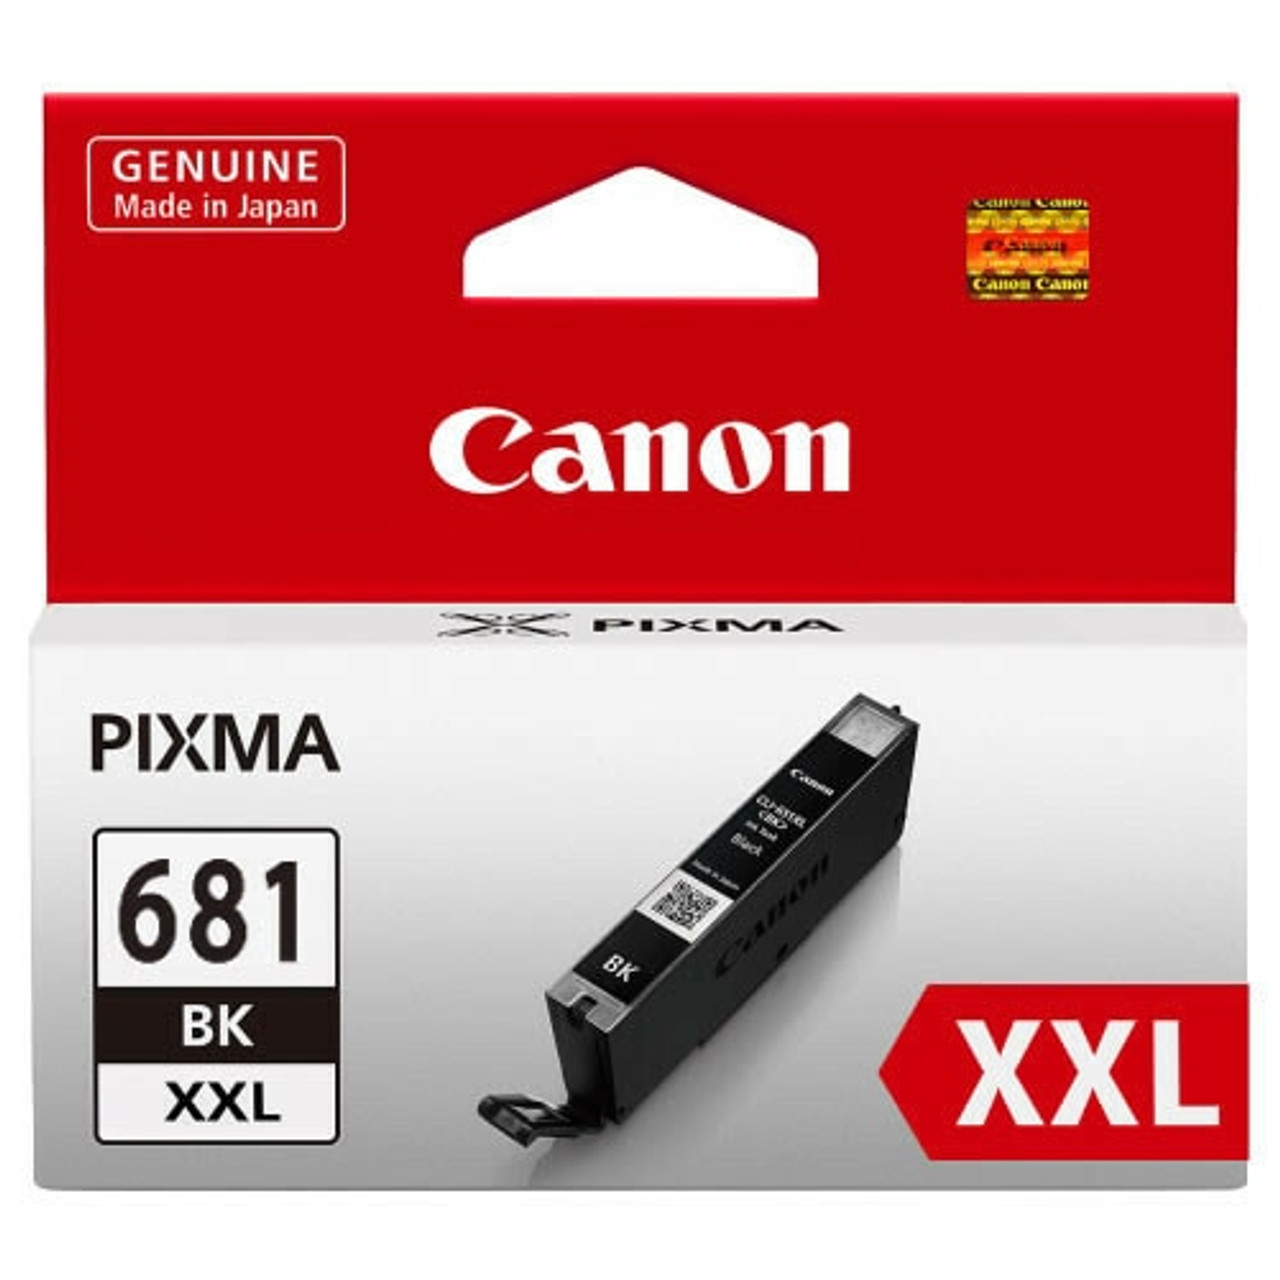 CANON #CLI681XXLBK EXTRA HIGH YIELD INK CARTRIDGE 6000 PAGES - BLACK